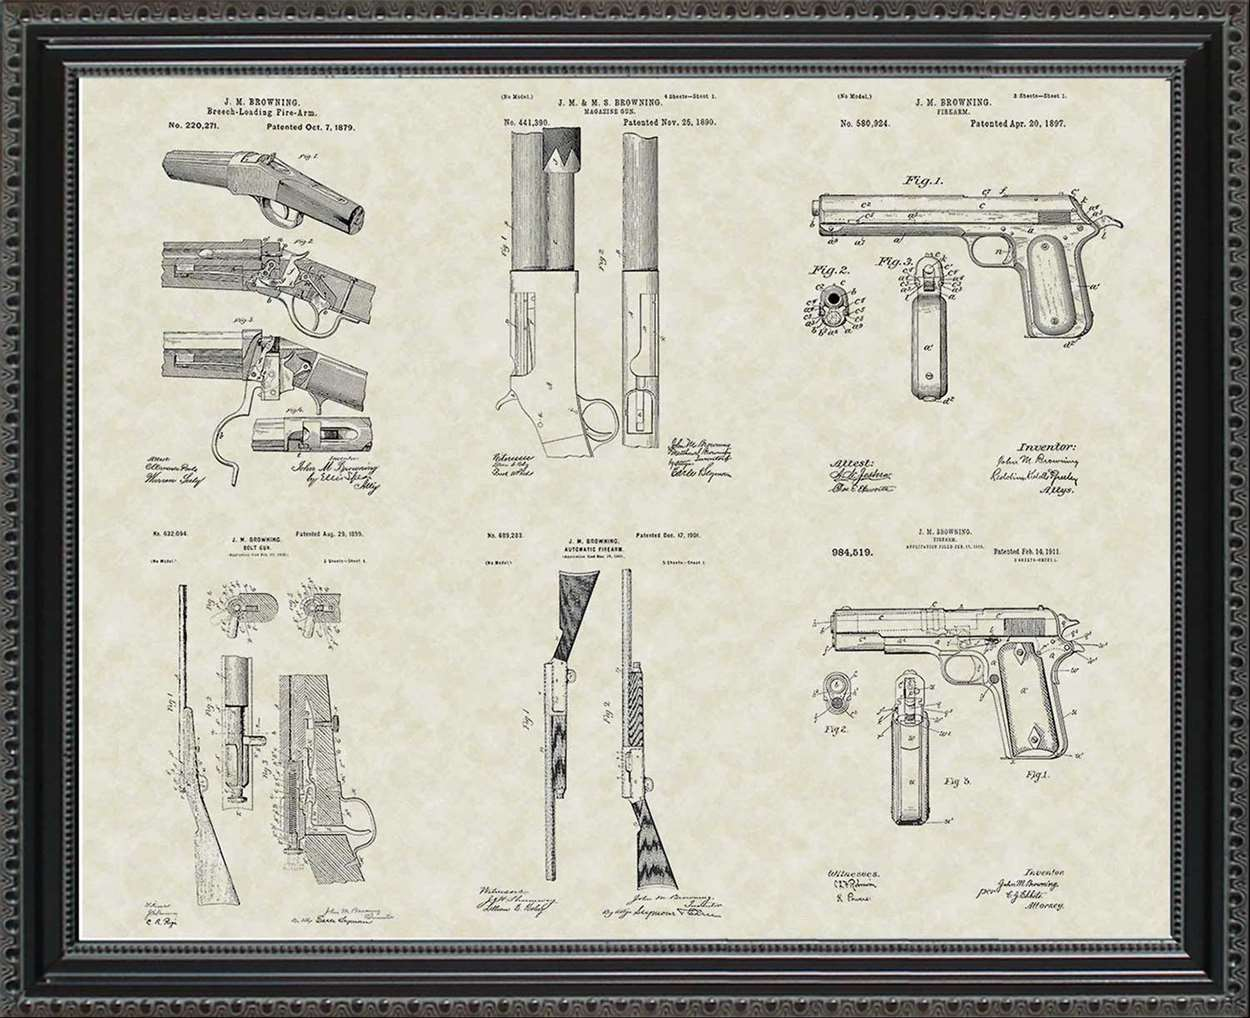 John Browning Firearms Patents, 20x24